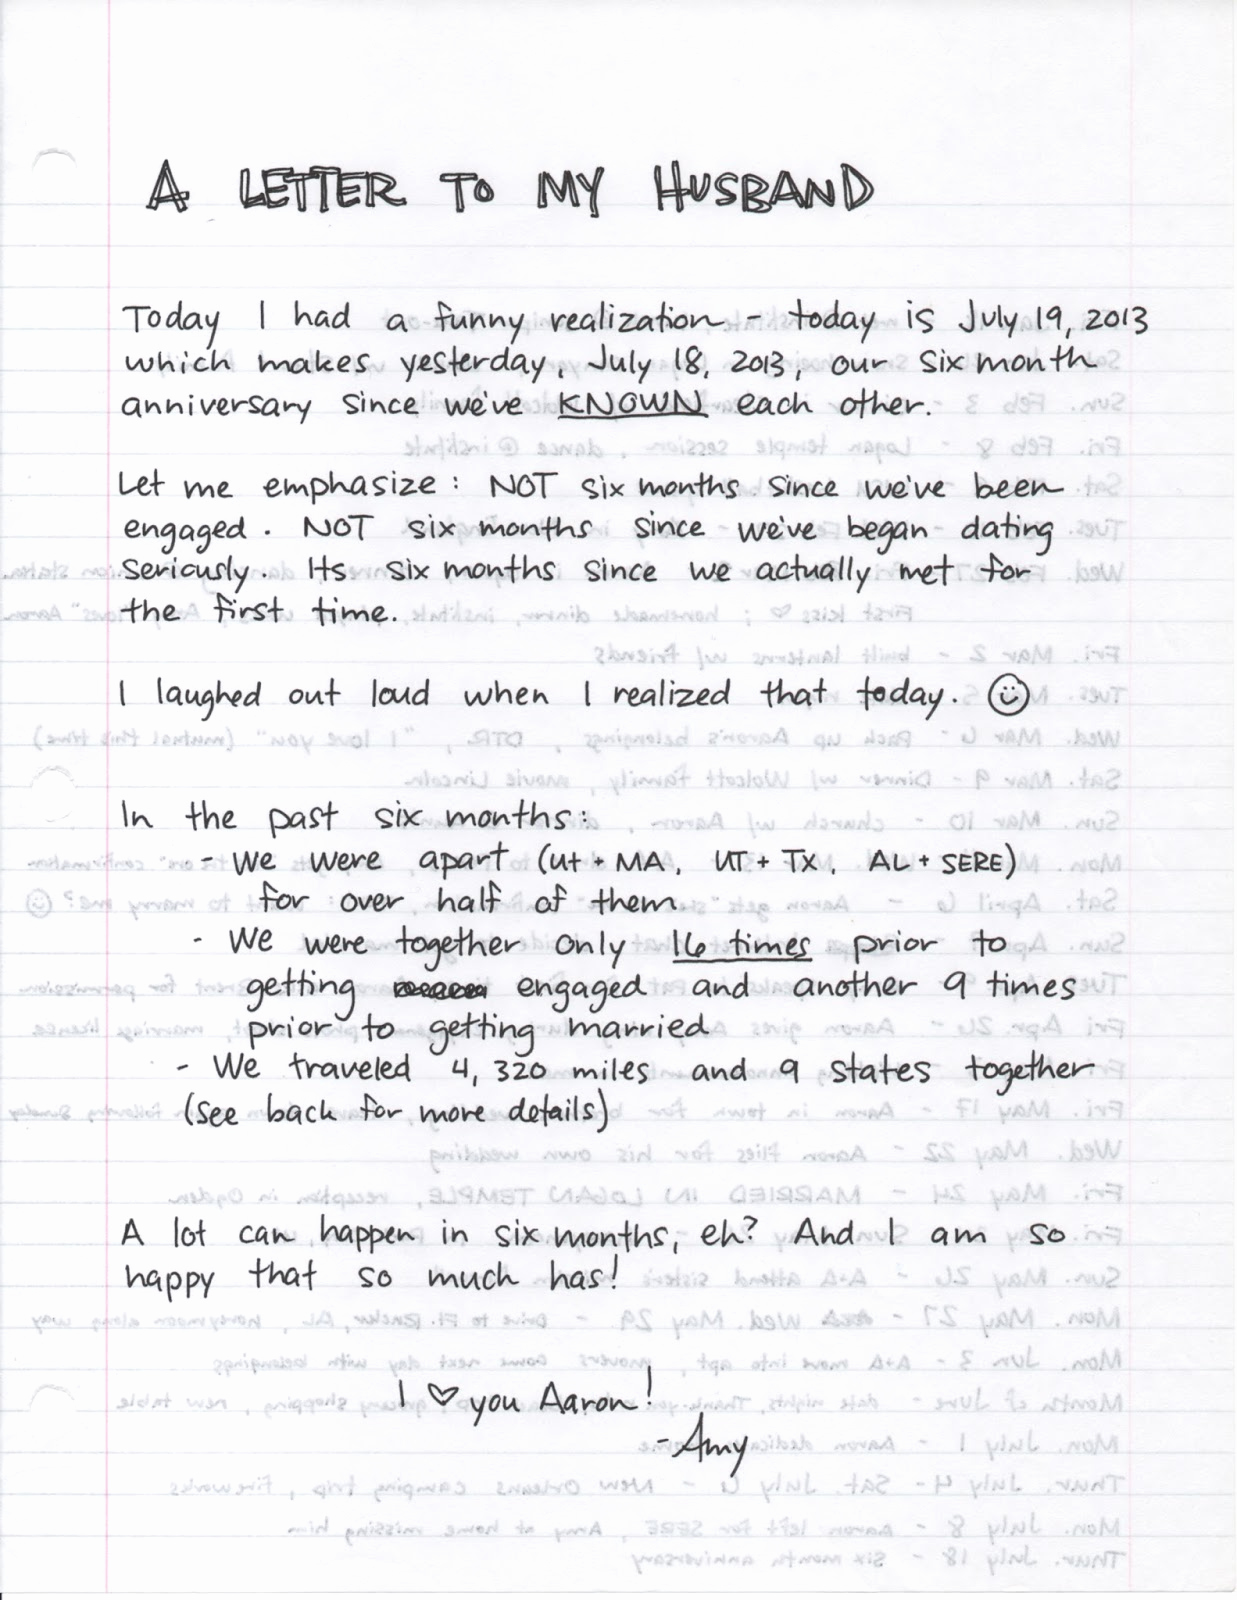 Letter to My Husband Awesome A Letter to My Husband